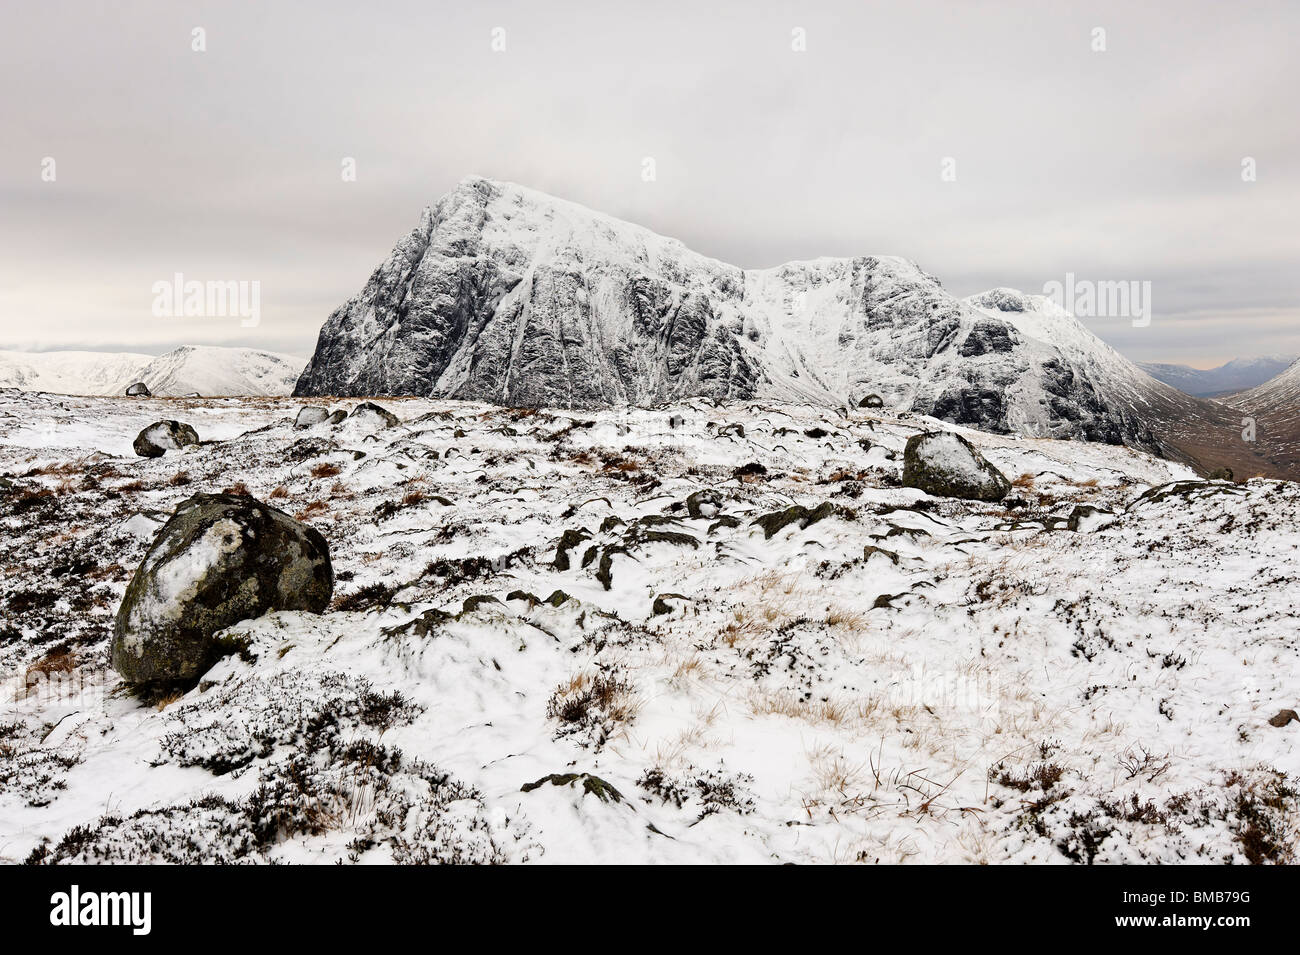 High on Scottish mountains, in hard winter conditions. This is a view of Buachaille Etive Mor from Beinn a Chrulaiste. - Stock Image